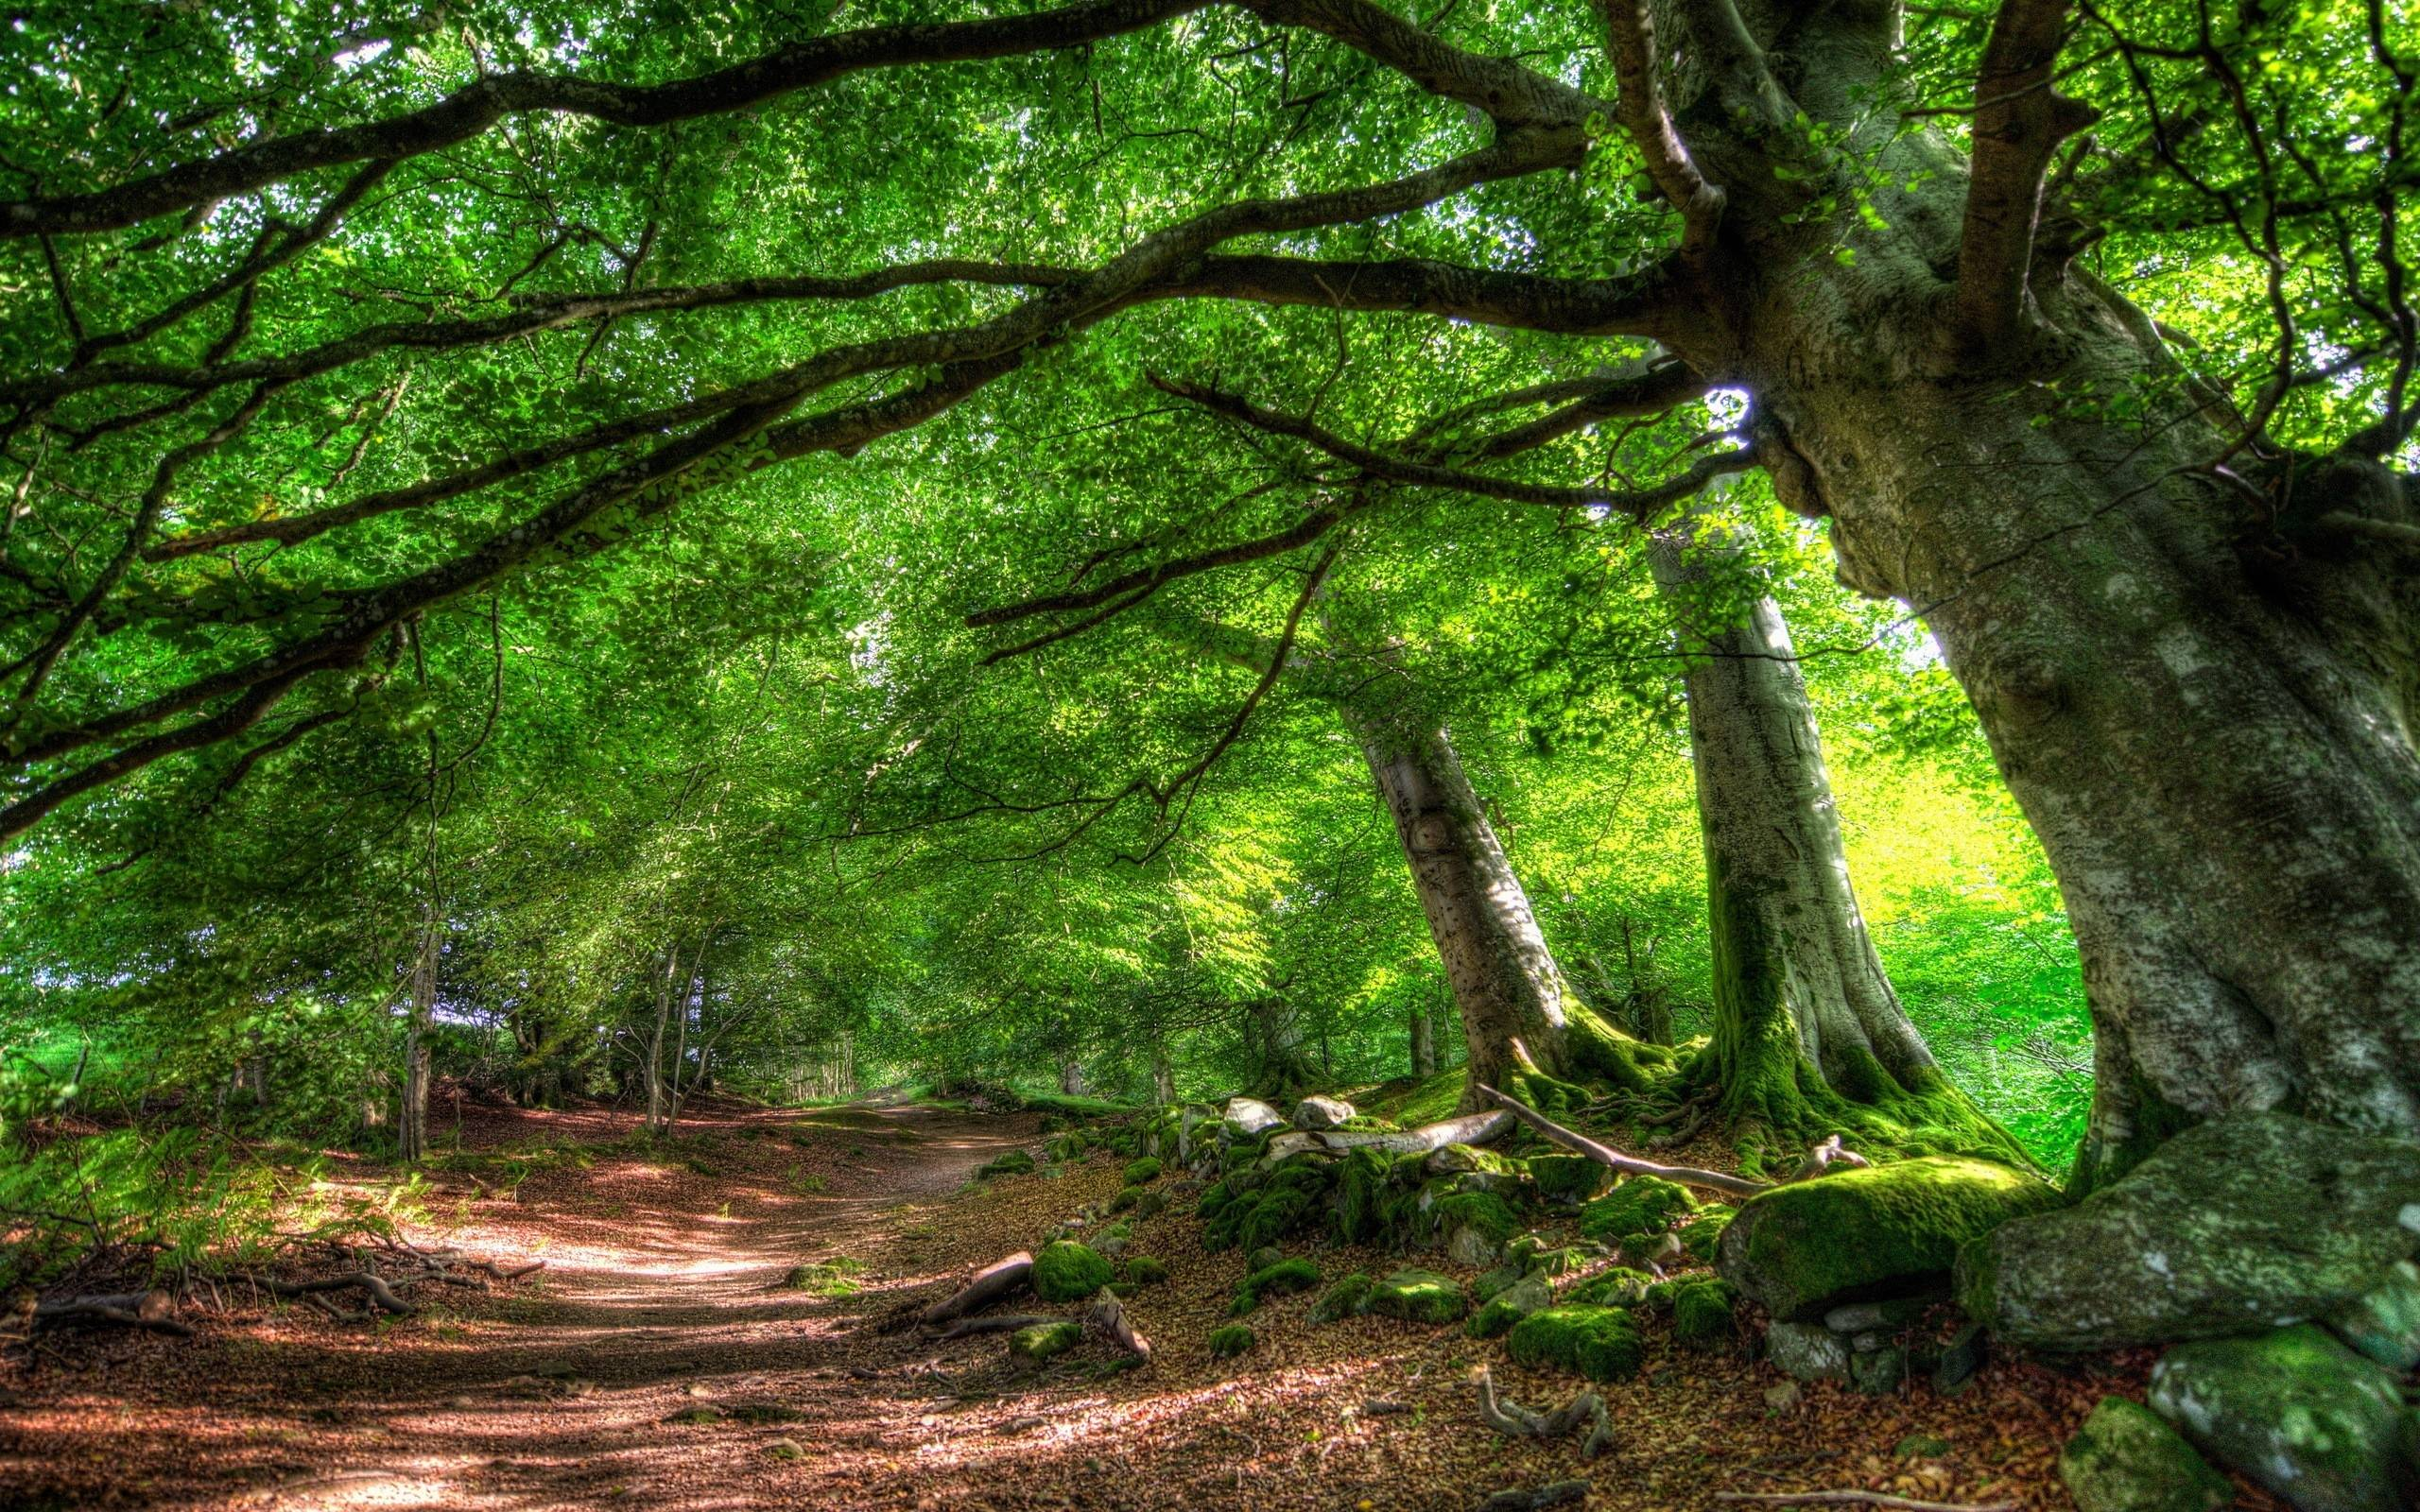 forest trail of green trees hd desktop wallpaper hd desktop